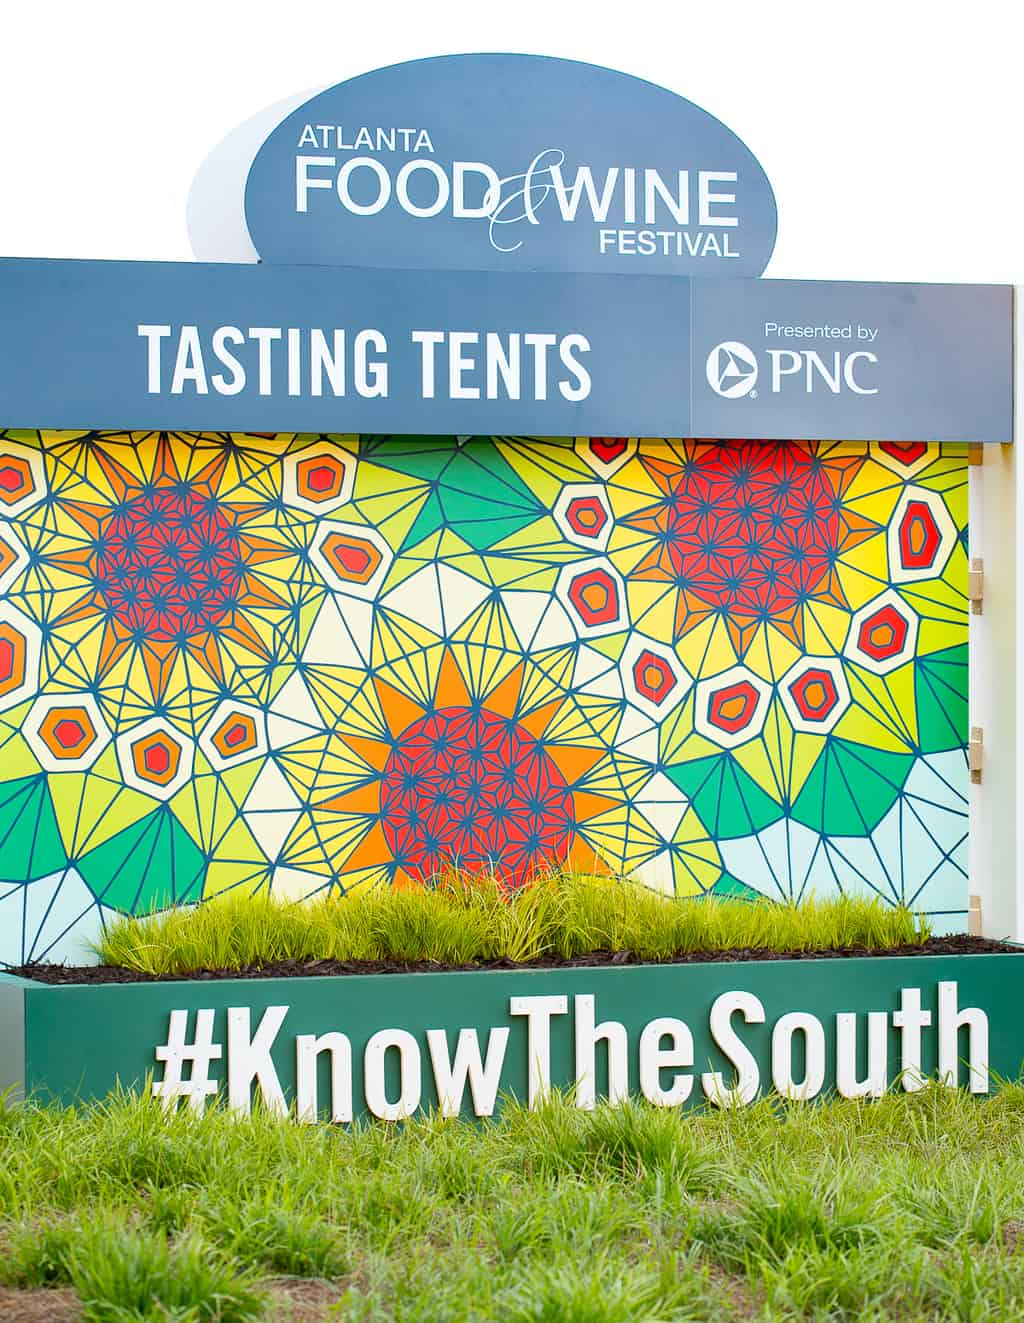 Atlanta Food and Wine Festival Tasting Tents Welcome Sign